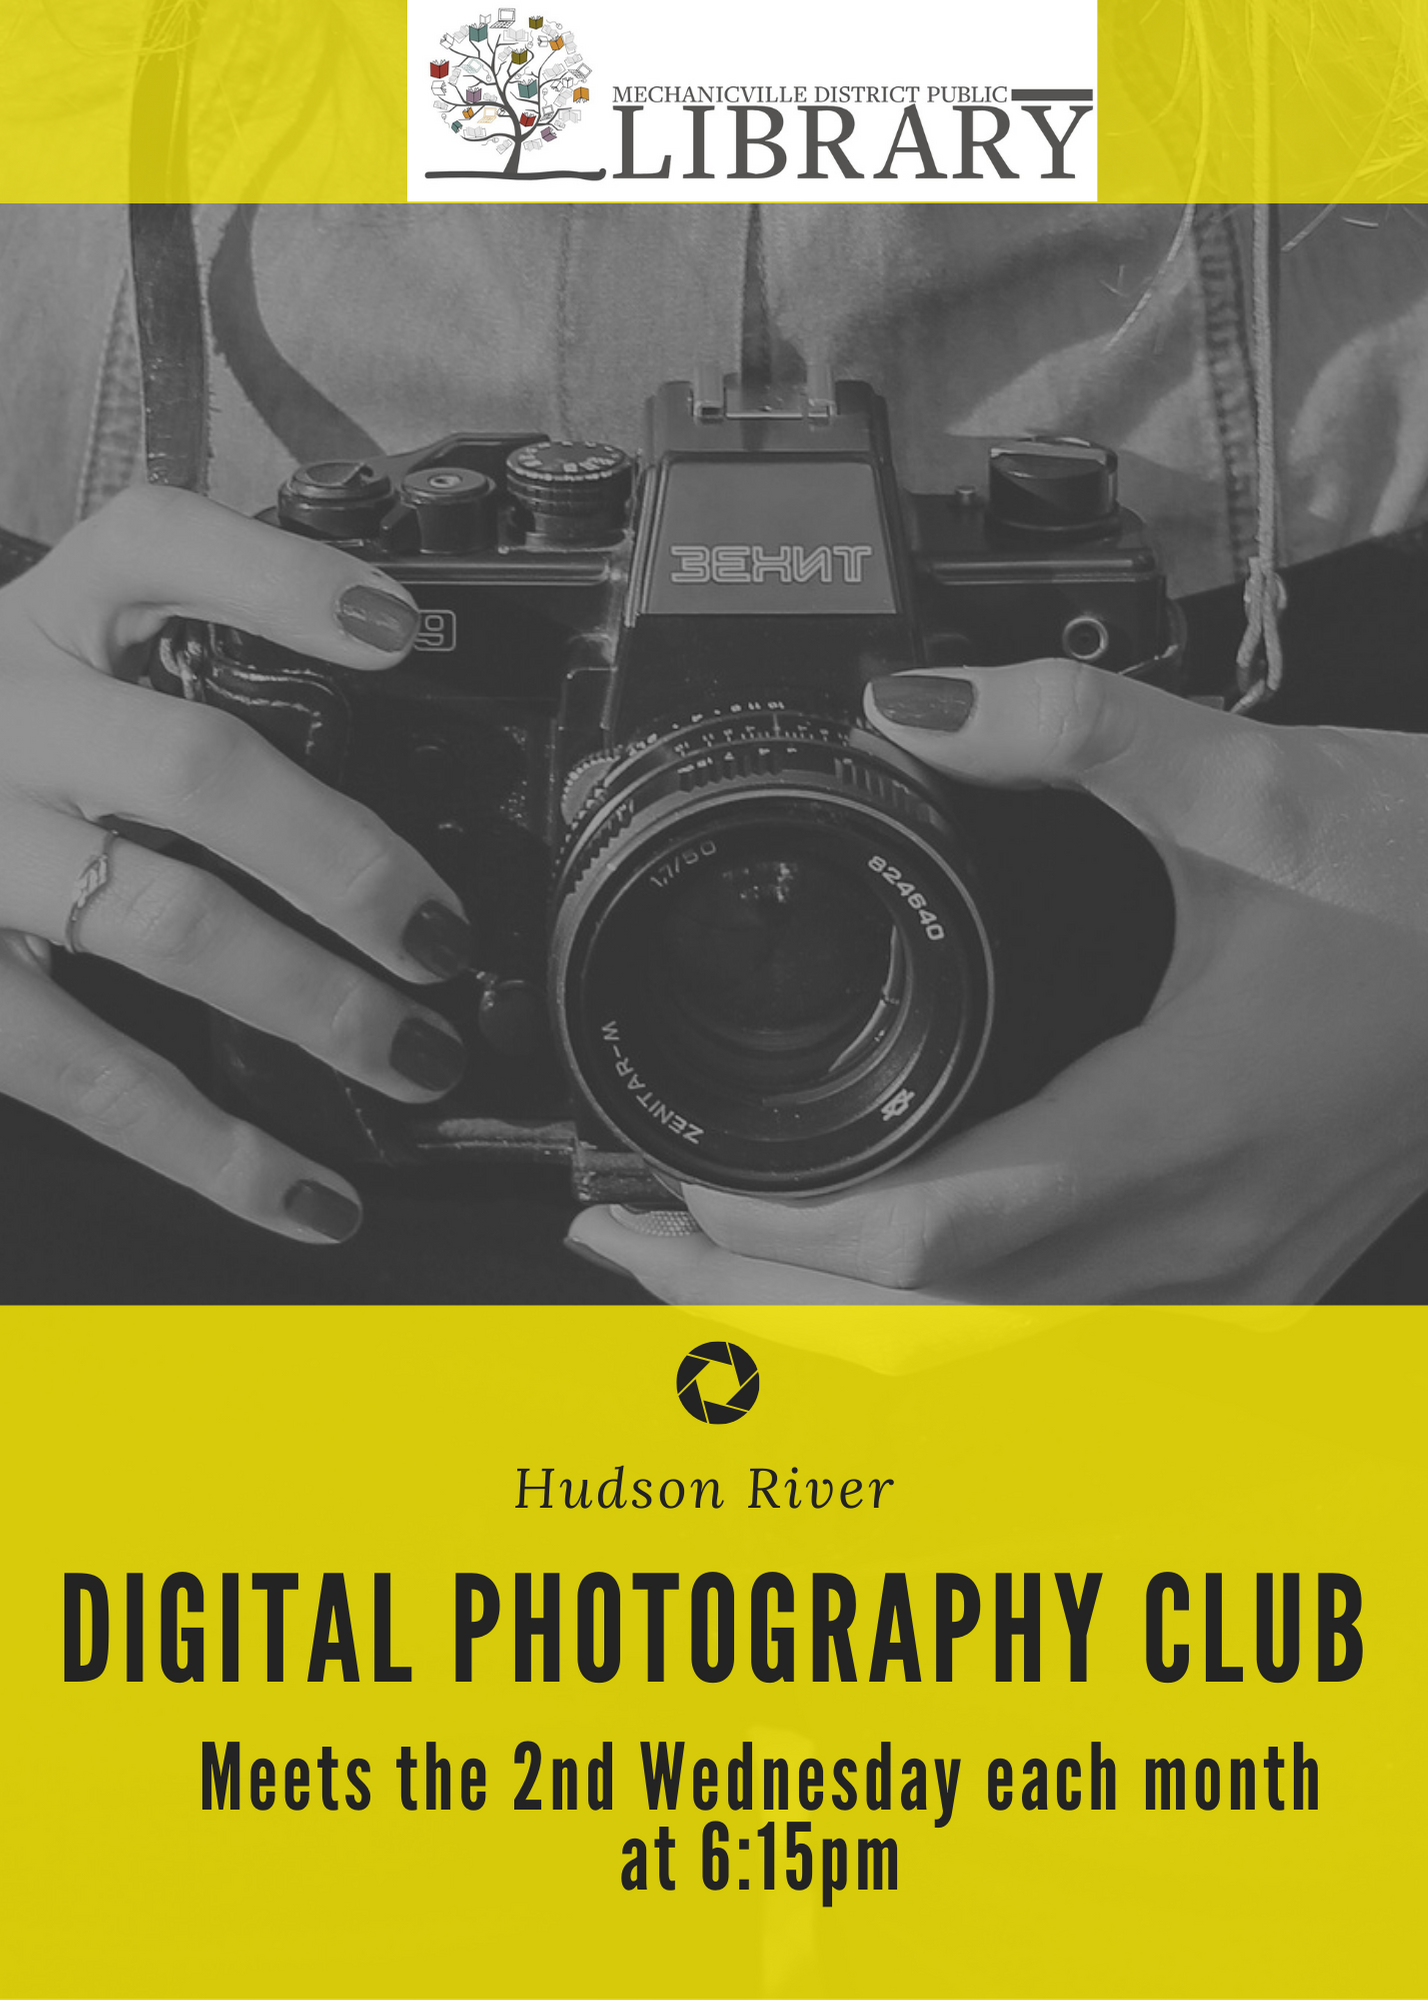 Hudson River Photo Club @ Mechanicville District Public Library | Mechanicville | New York | United States